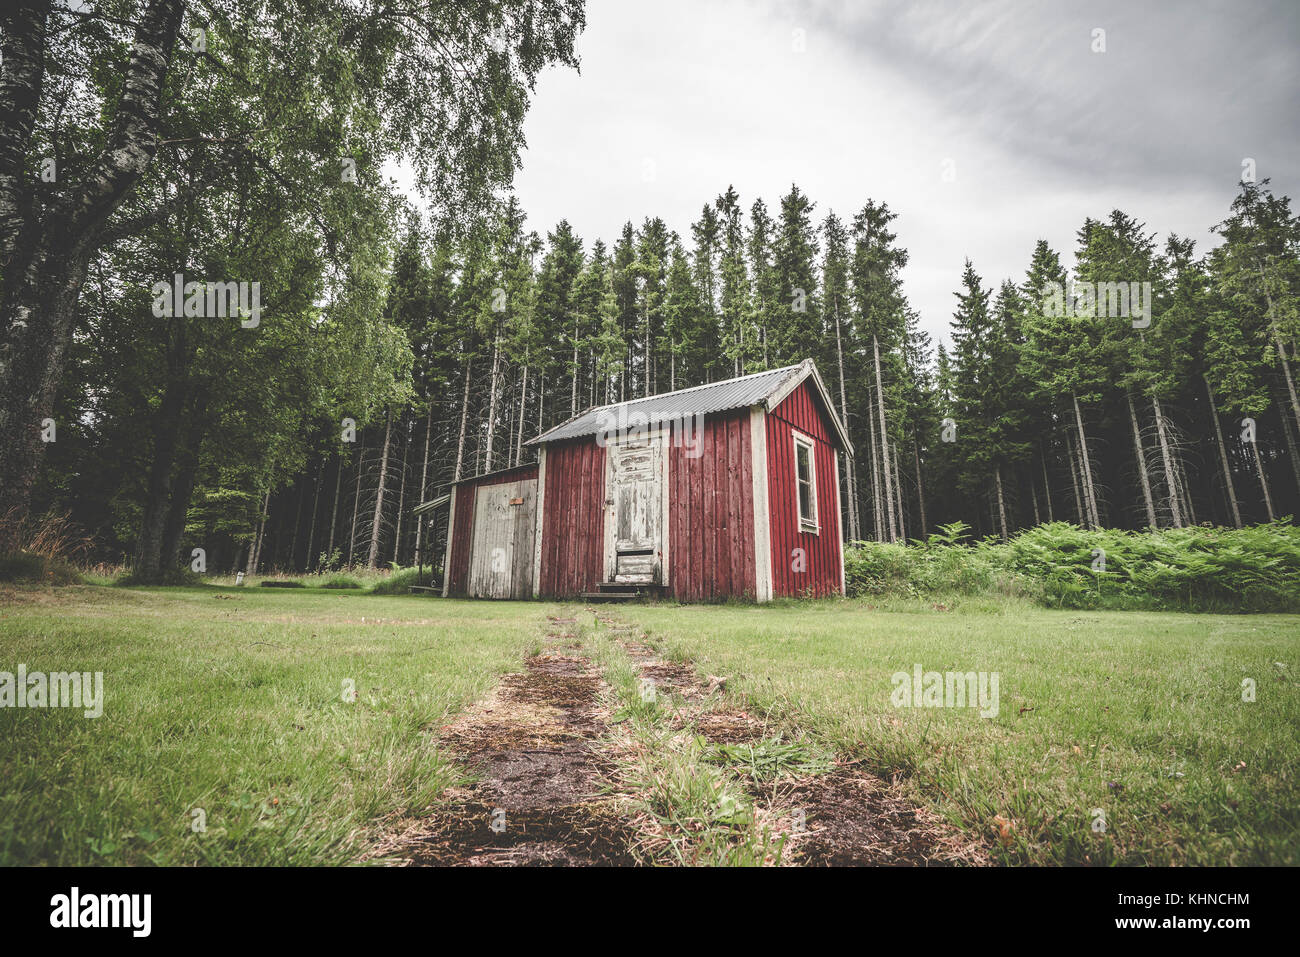 Red cabin in a swedish forest with pine trees with warn planks and weathered paint - Stock Image